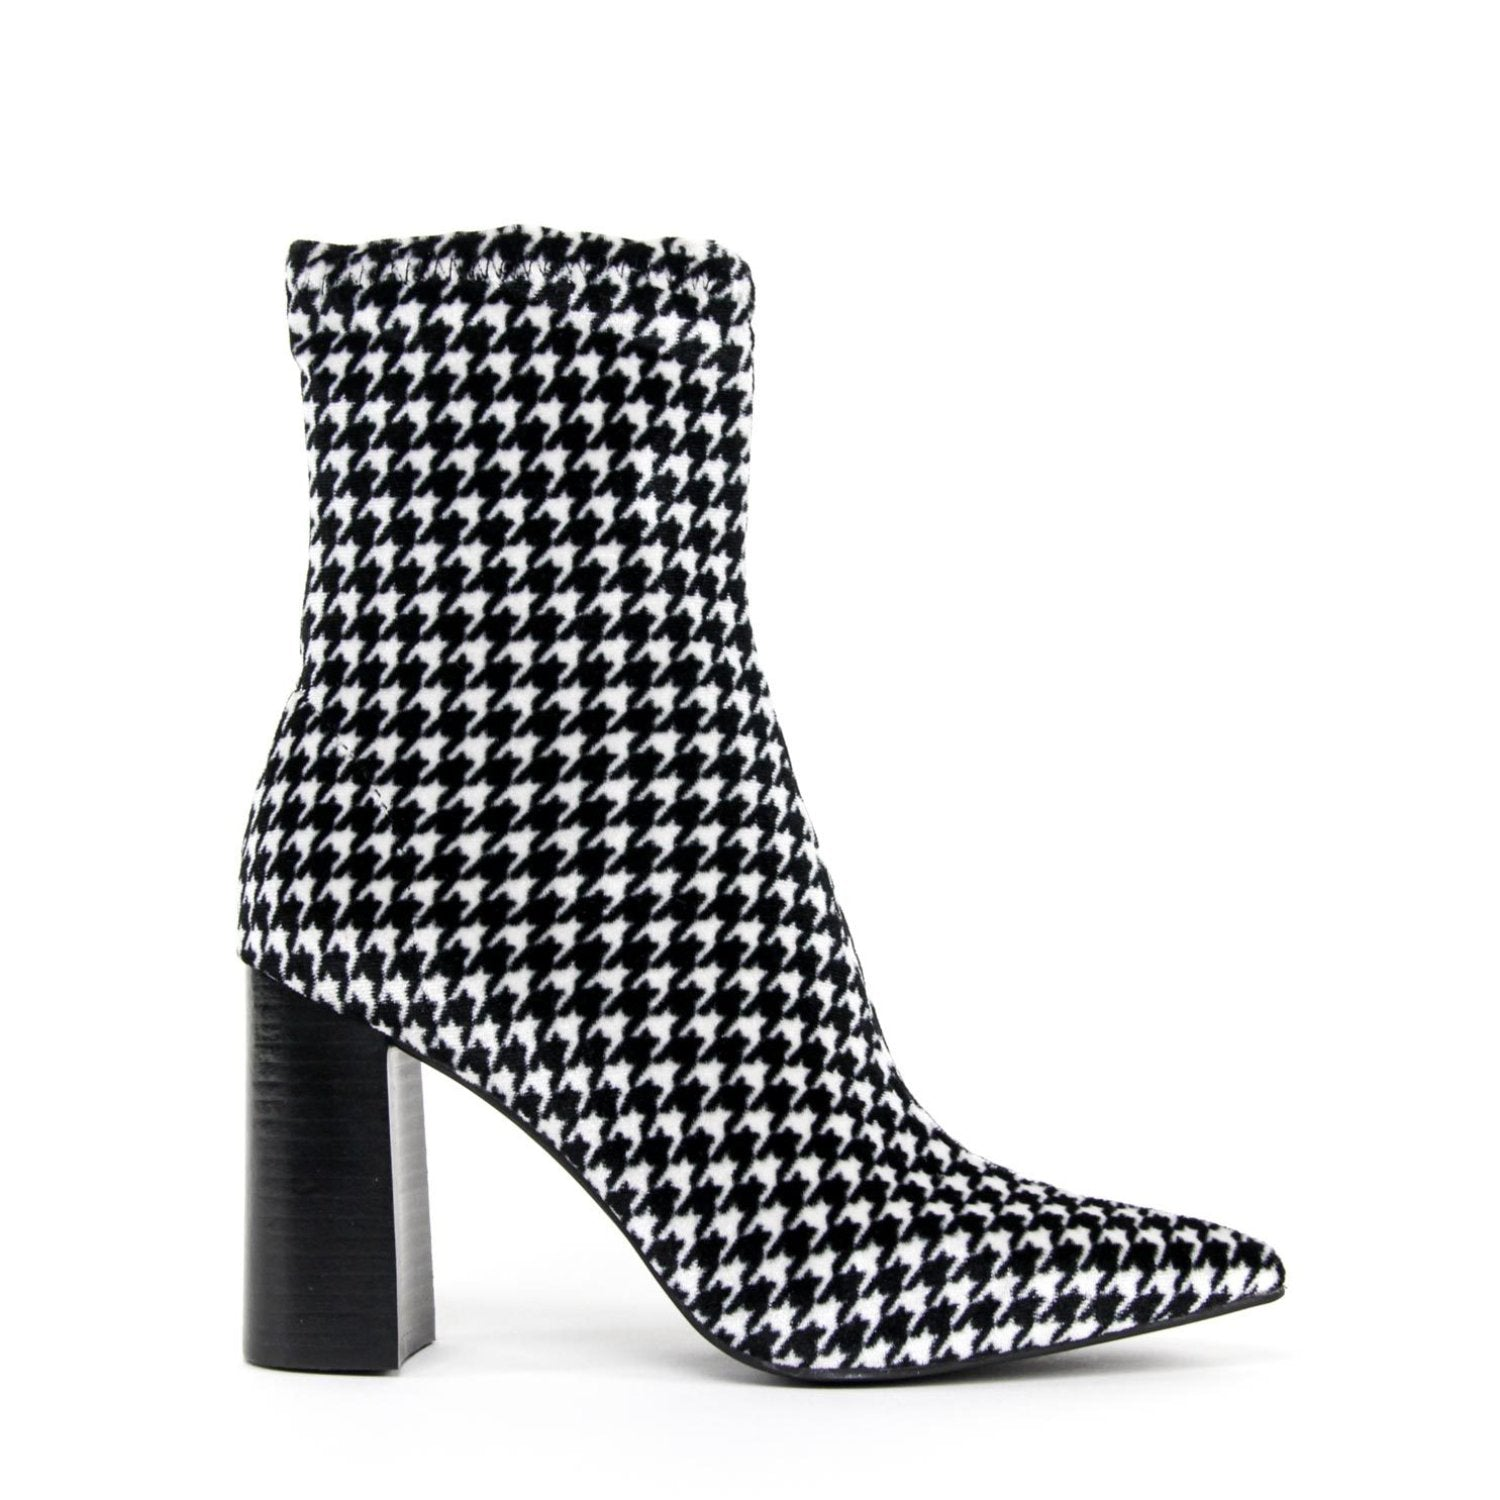 b71bf87e569 Details about NEW JEFFREY CAMPBELL SIREN High Heel Ankle Boot Houndstooth  Velvet